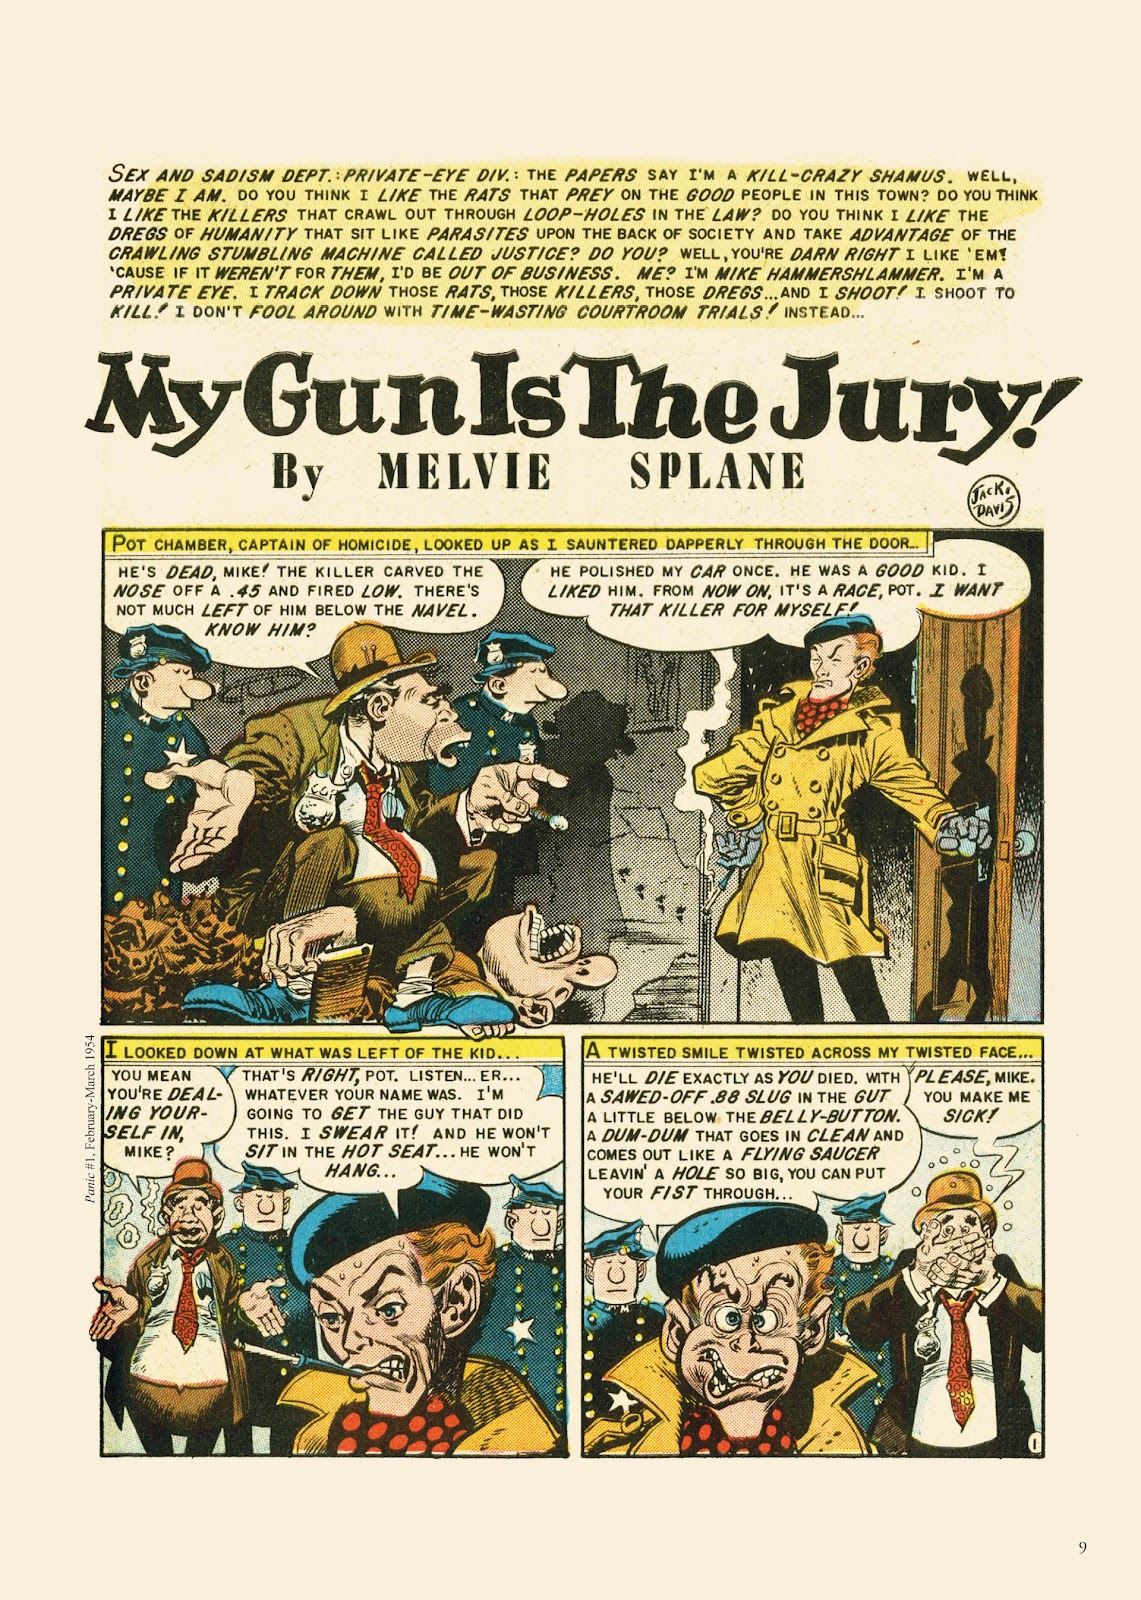 Read online Sincerest Form of Parody: The Best 1950s MAD-Inspired Satirical Comics comic -  Issue # TPB (Part 1) - 10